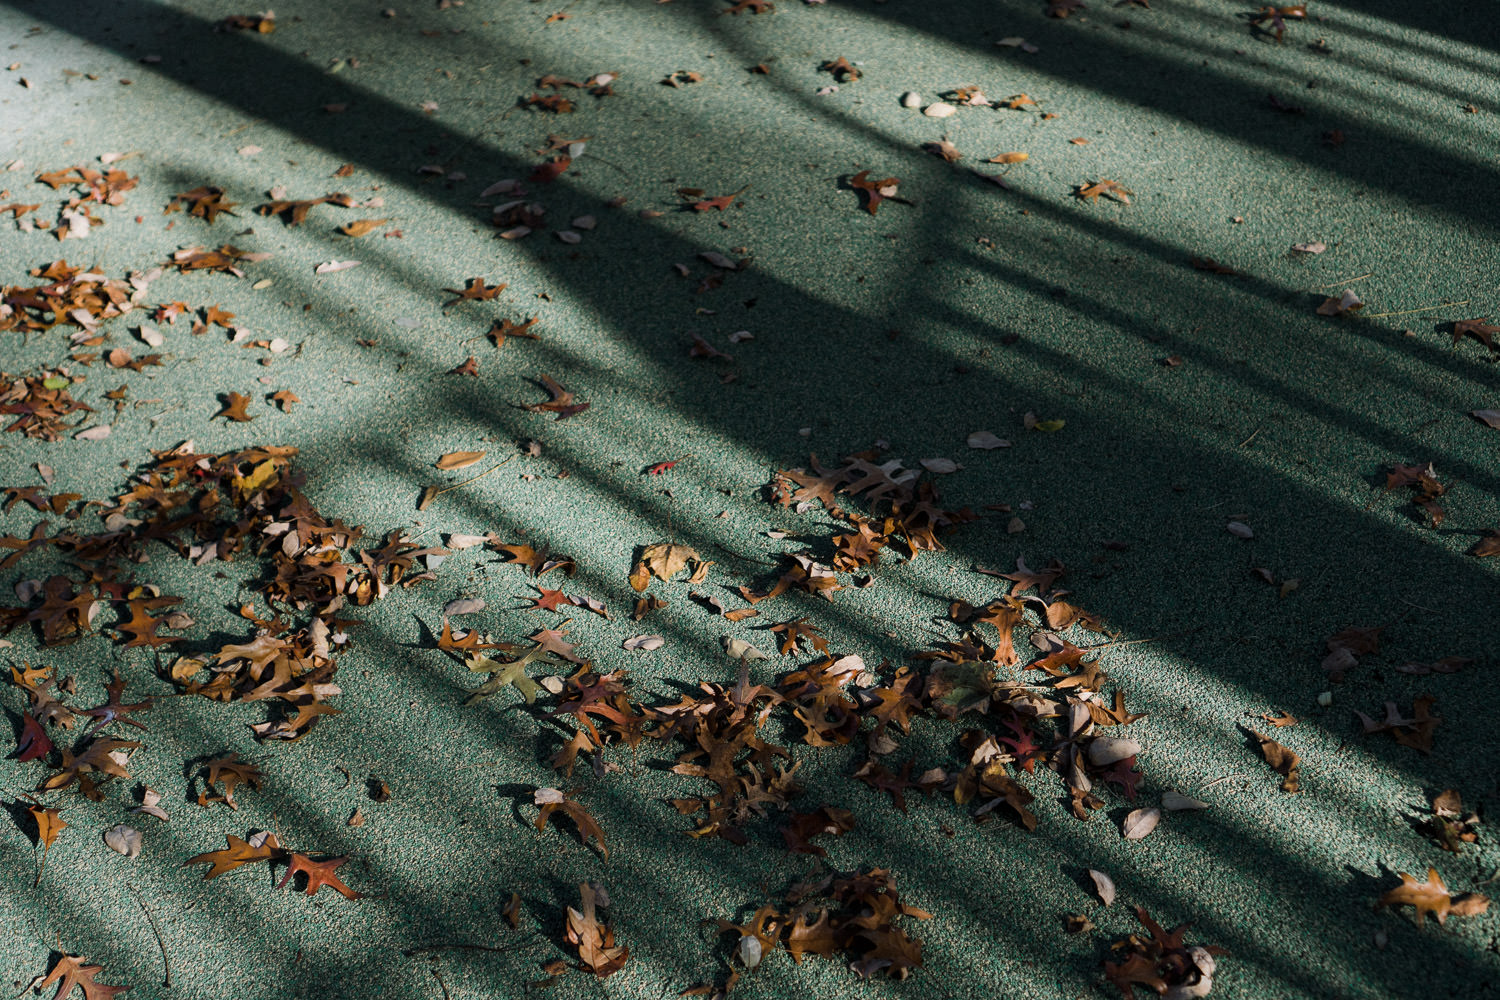 Leaves strewn across a playground.